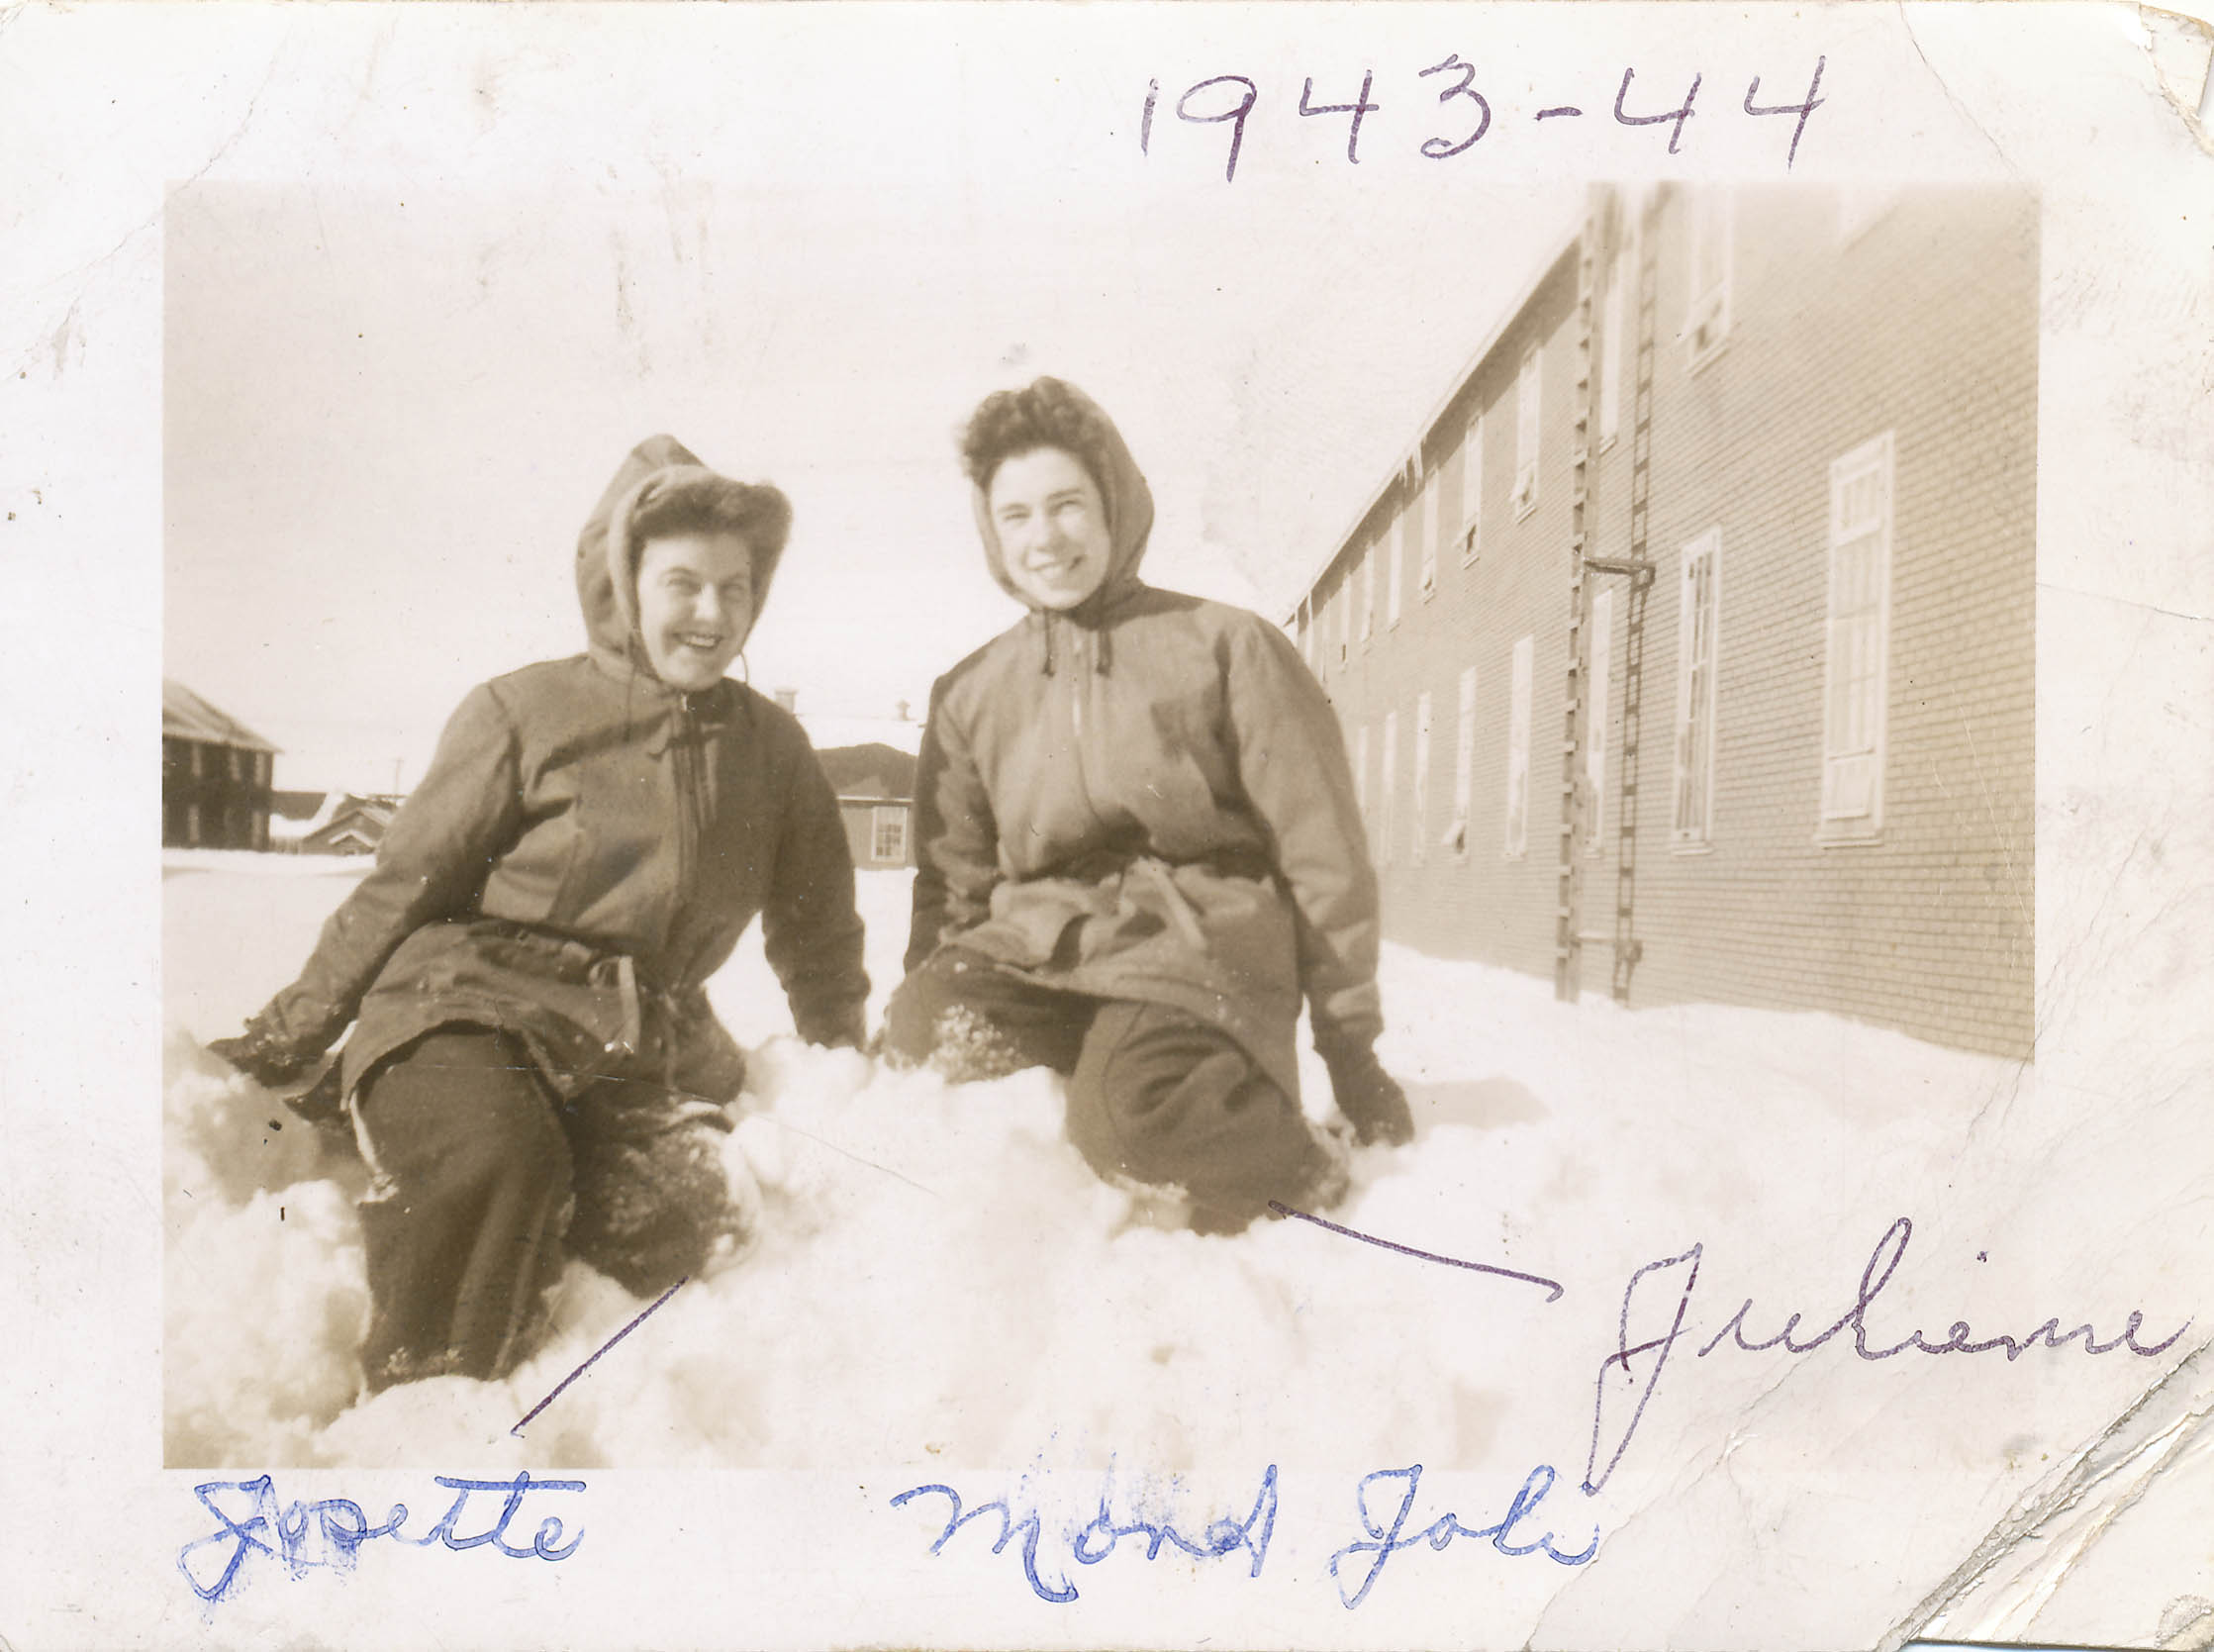 Julienne Leury, on the right, winter of 1943-1944, RCAF Mont-Joli base, Québec.